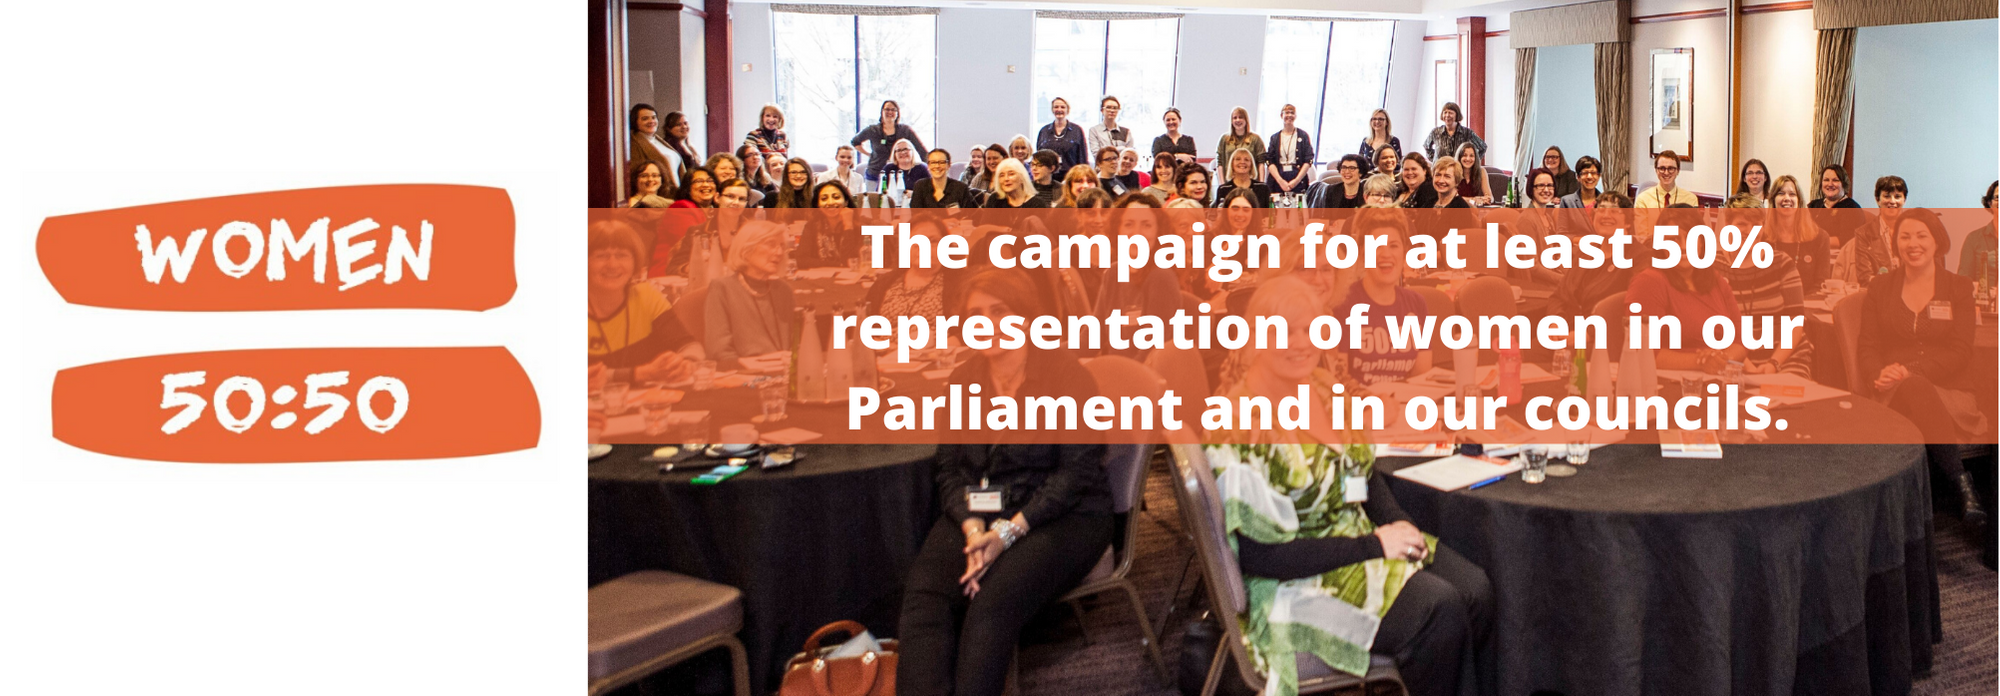 Women 50:50 The campaign for at least 50% representation of women in our Parliament and in our councils.